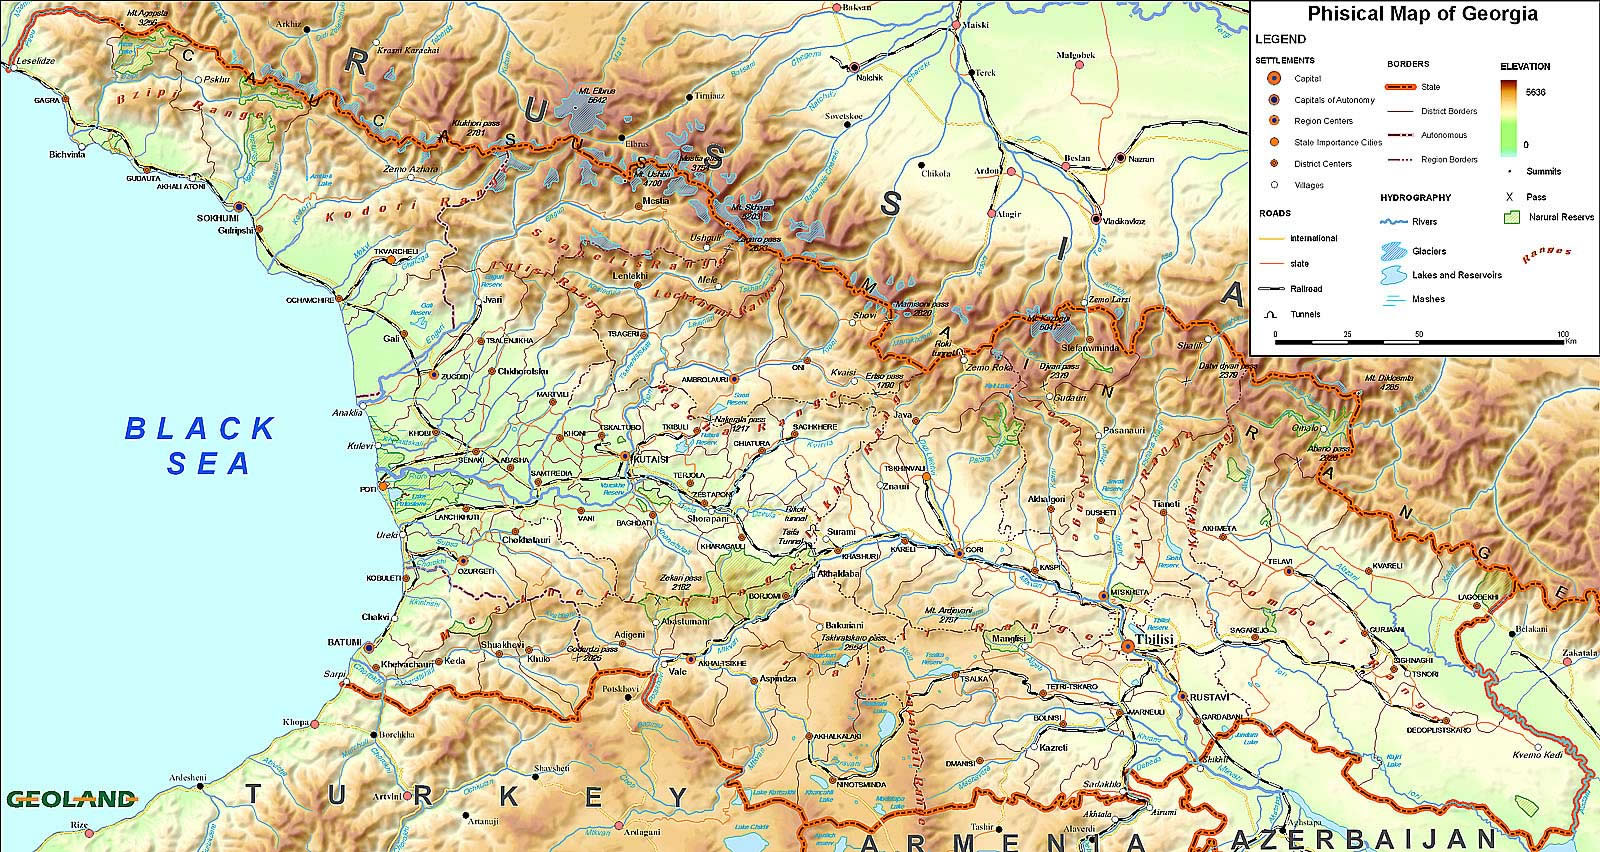 topographical map of georgia with Pays 1379 Carte Physique Georgie on Al maps besides Wegenkaart Landkaart Argentinie Noord Argentina North Uruguay Itmb as well Battlefield Gettysburg Map together with Henry1864map together with Tokio.